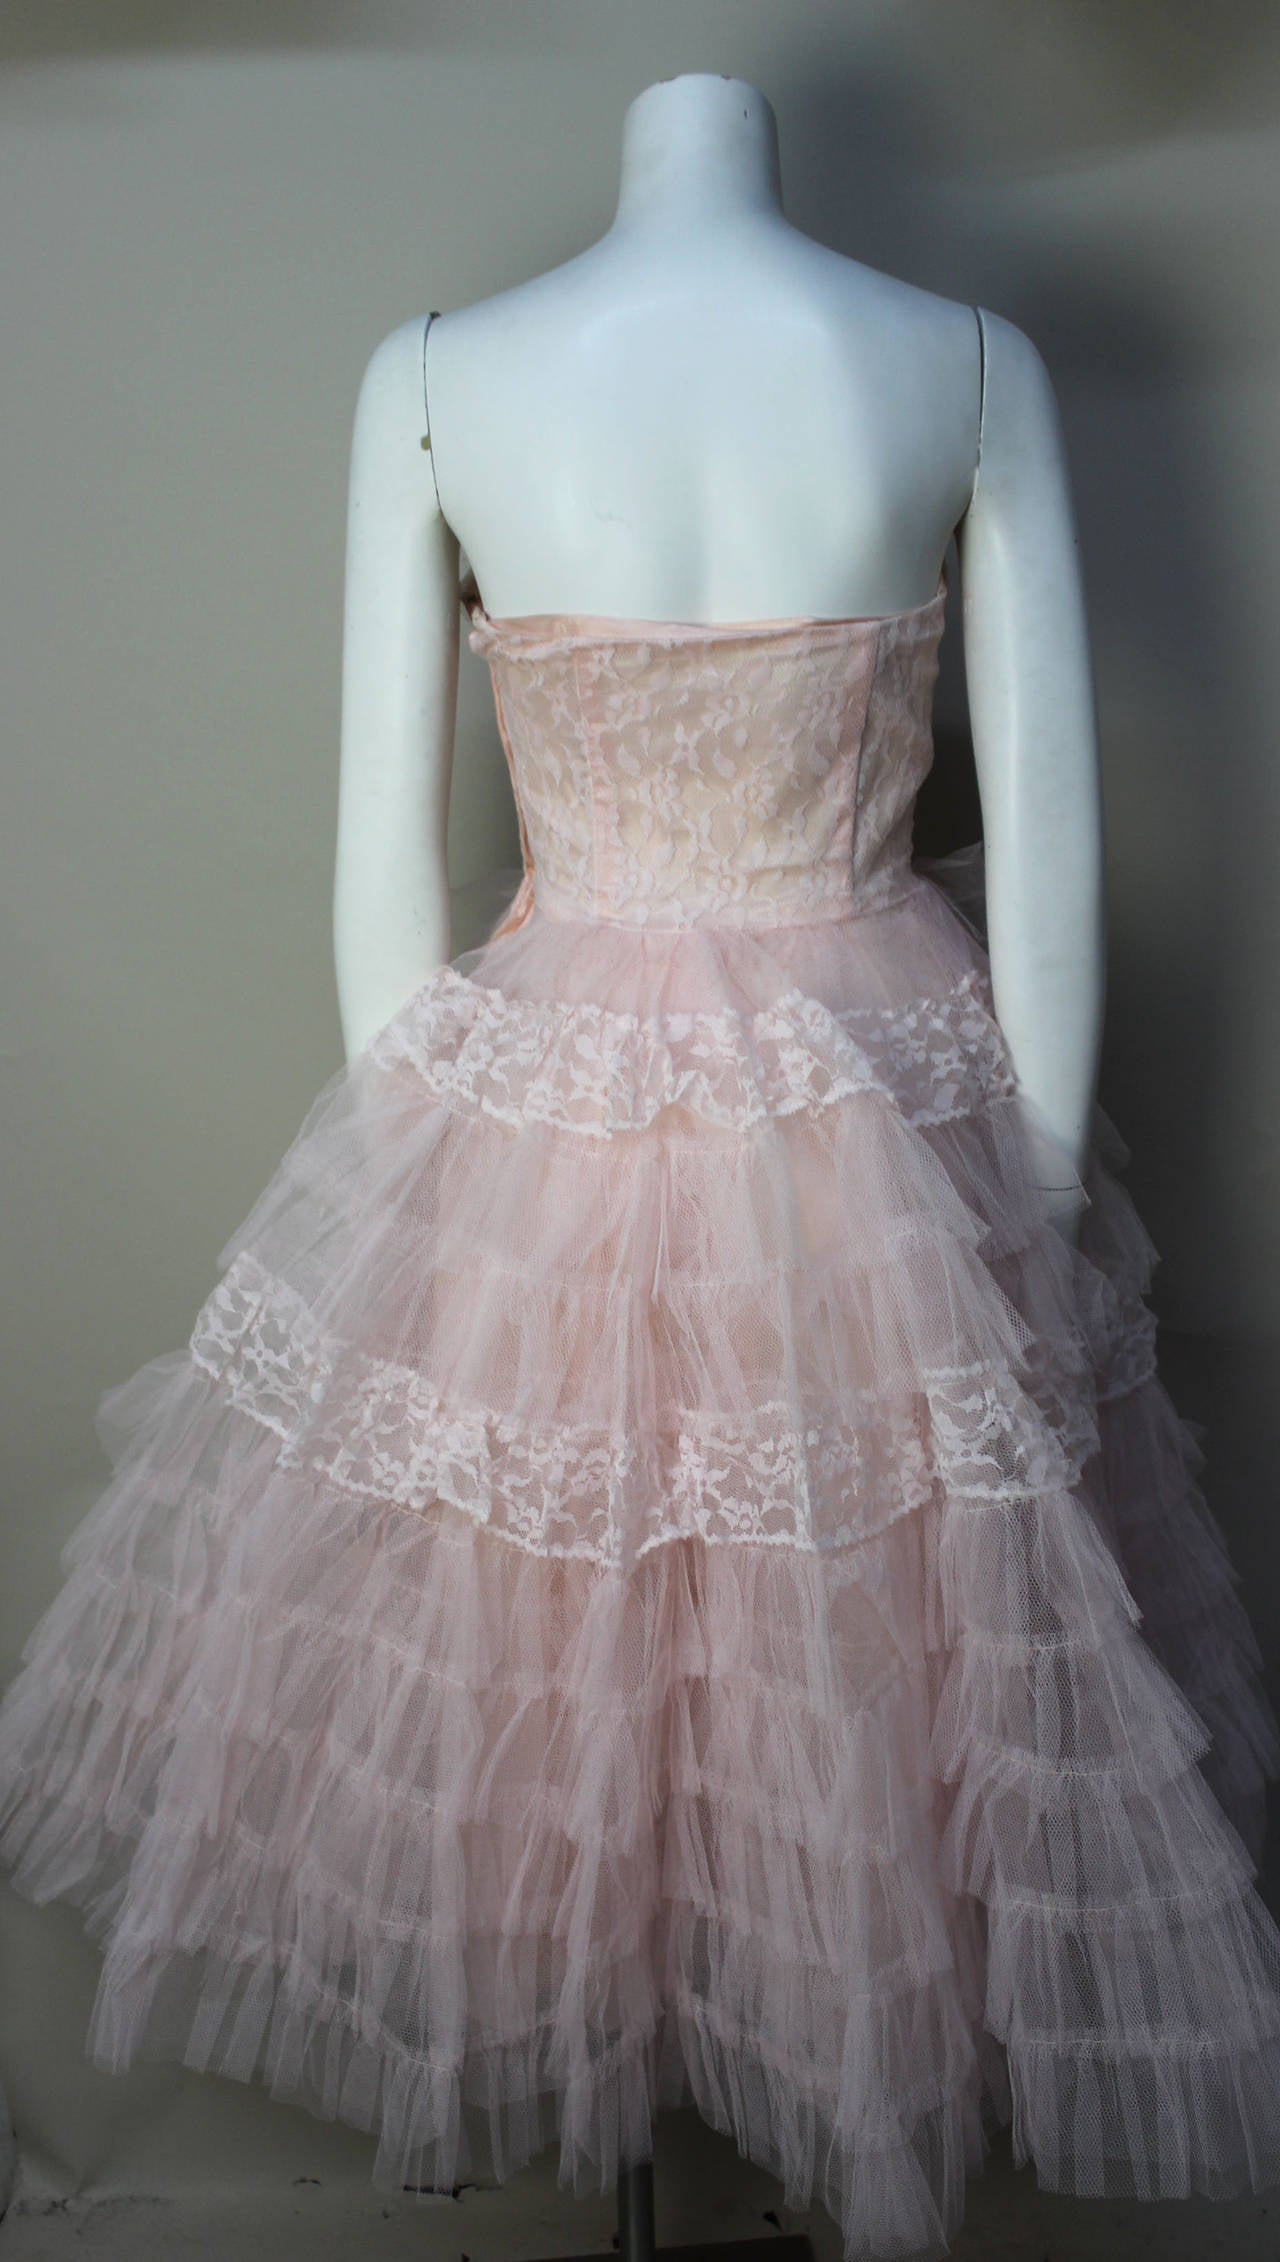 Women's Stunning Never Worn 1950s Pink Tulle Evening Dress with Lace Bolero For Sale